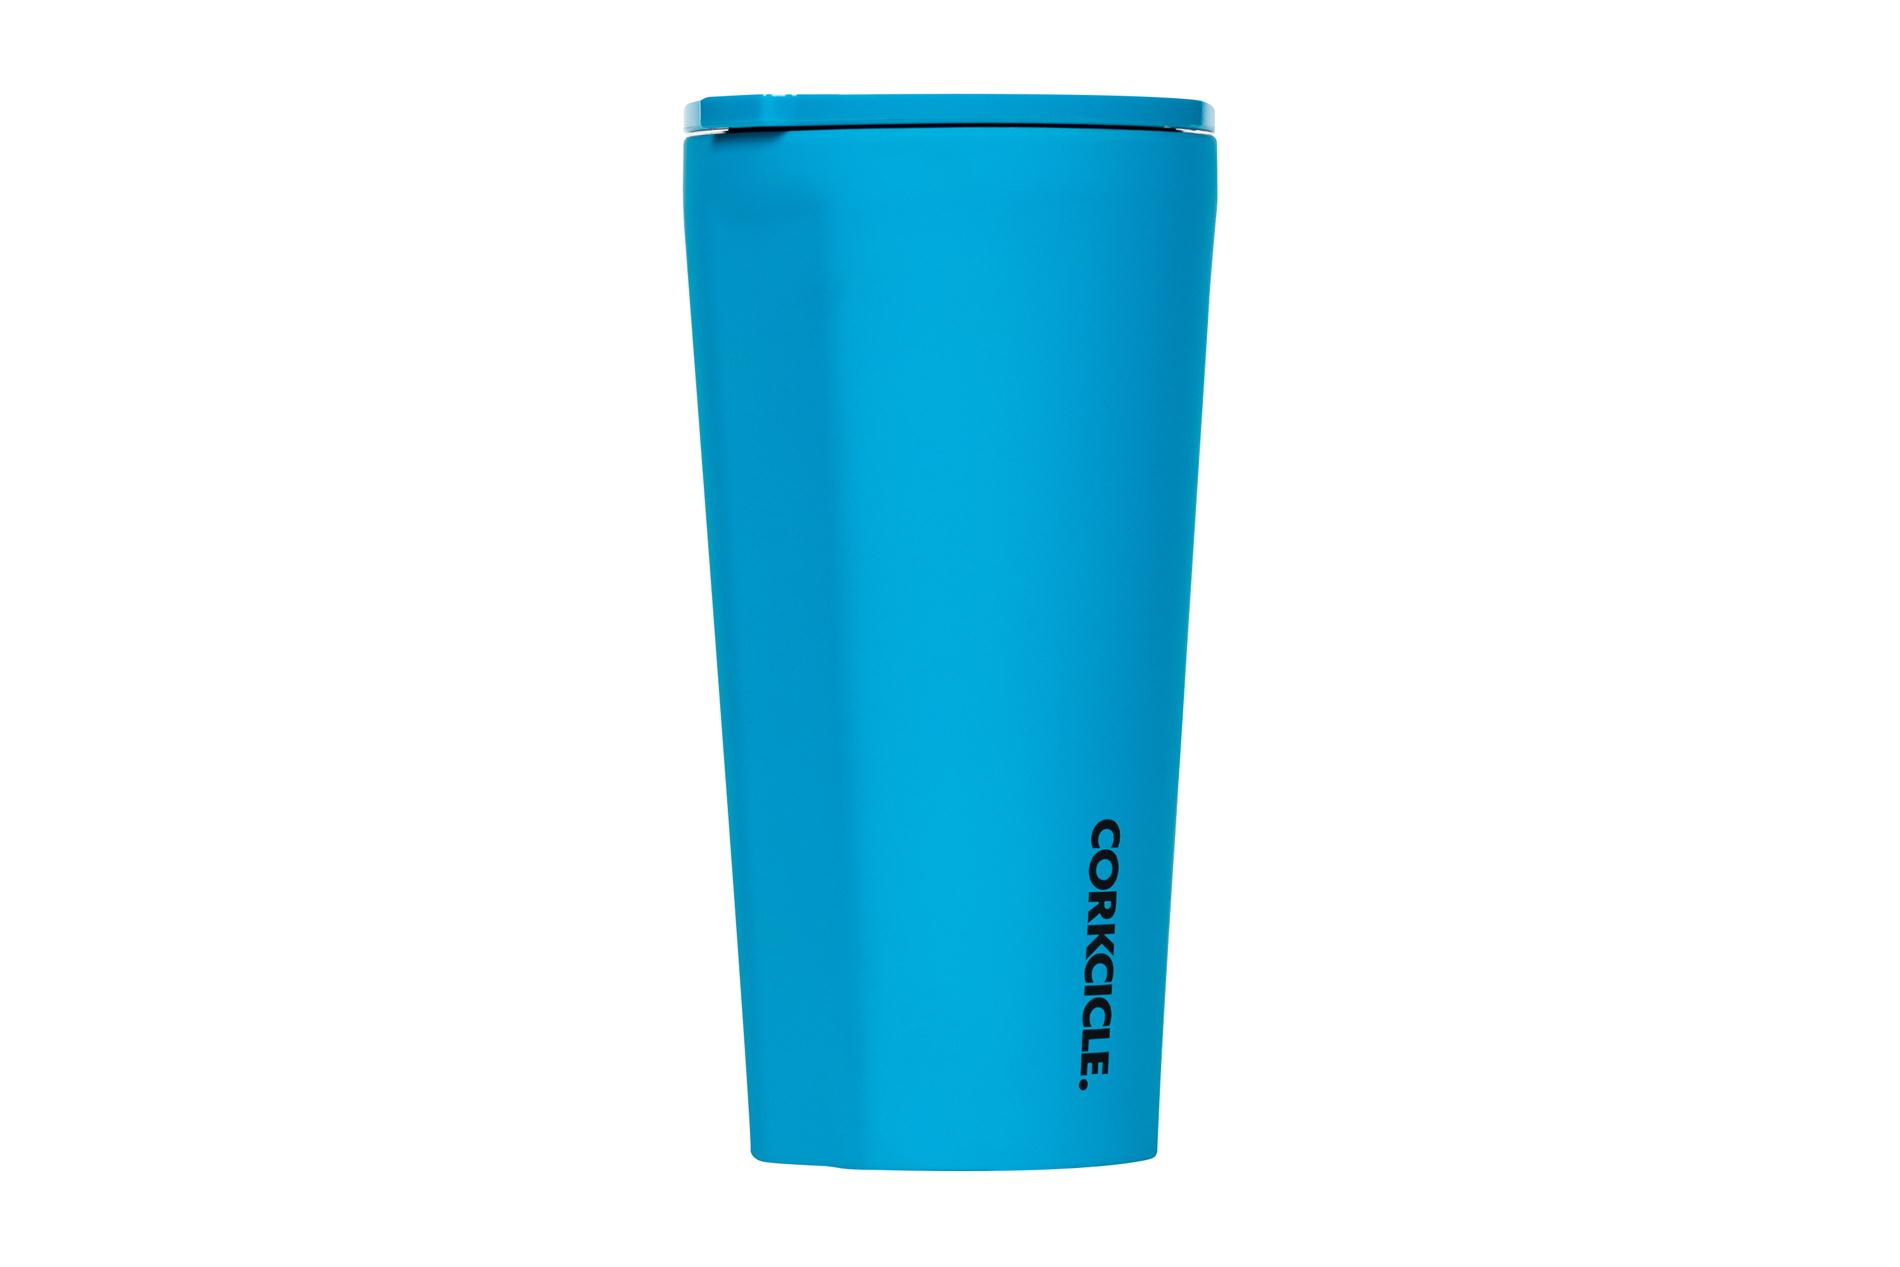 Corkcicle Becher / Thermo Isolierbecher Blue 475 ml Neon